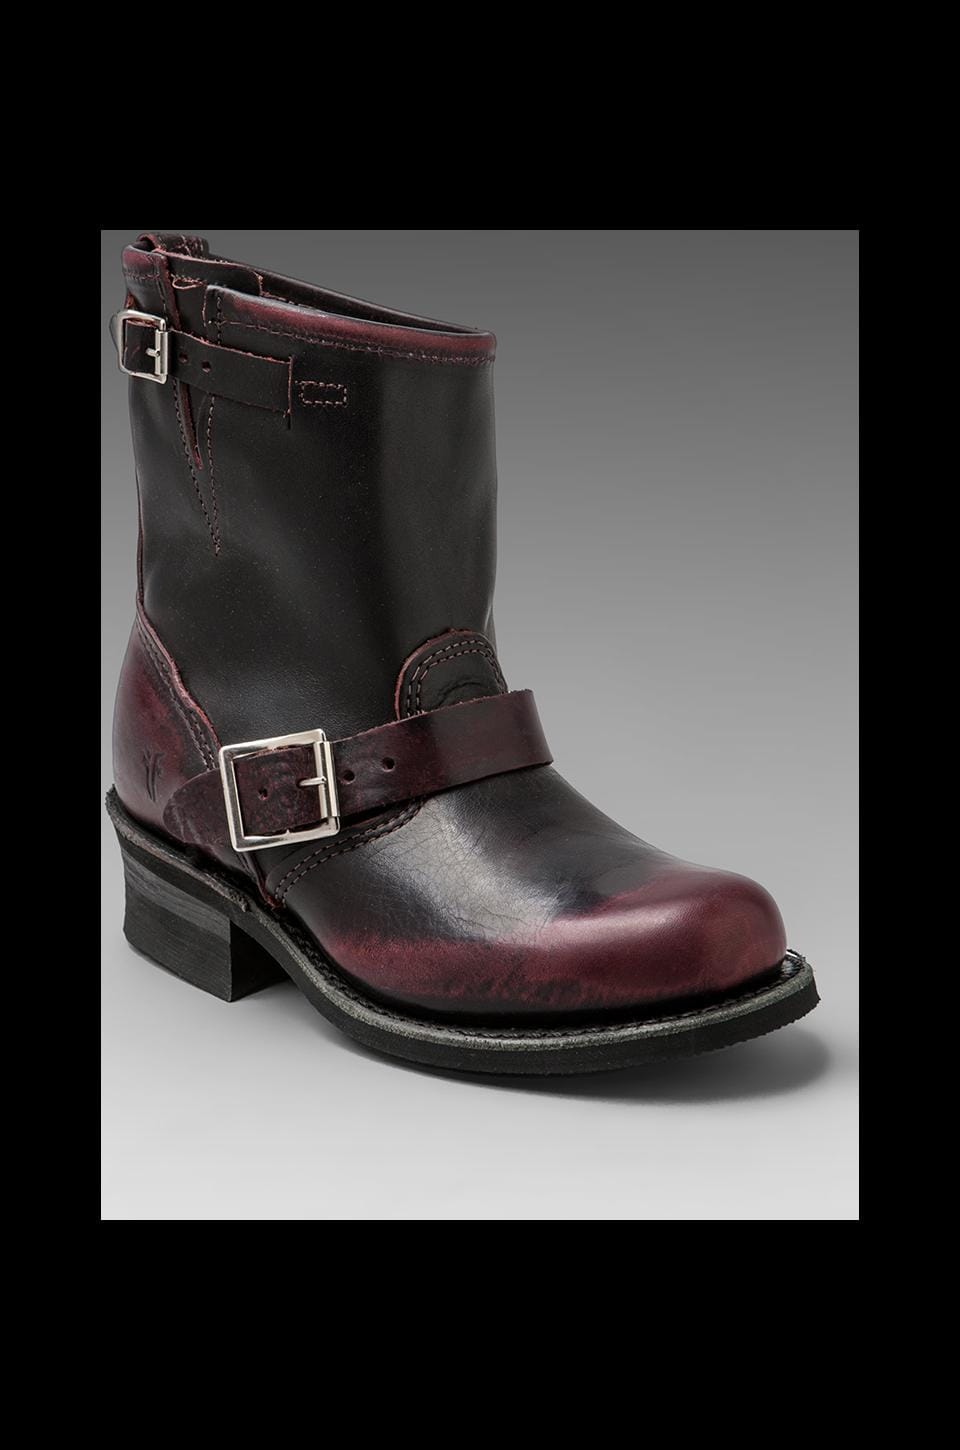 Frye Engineer 8R in Plum